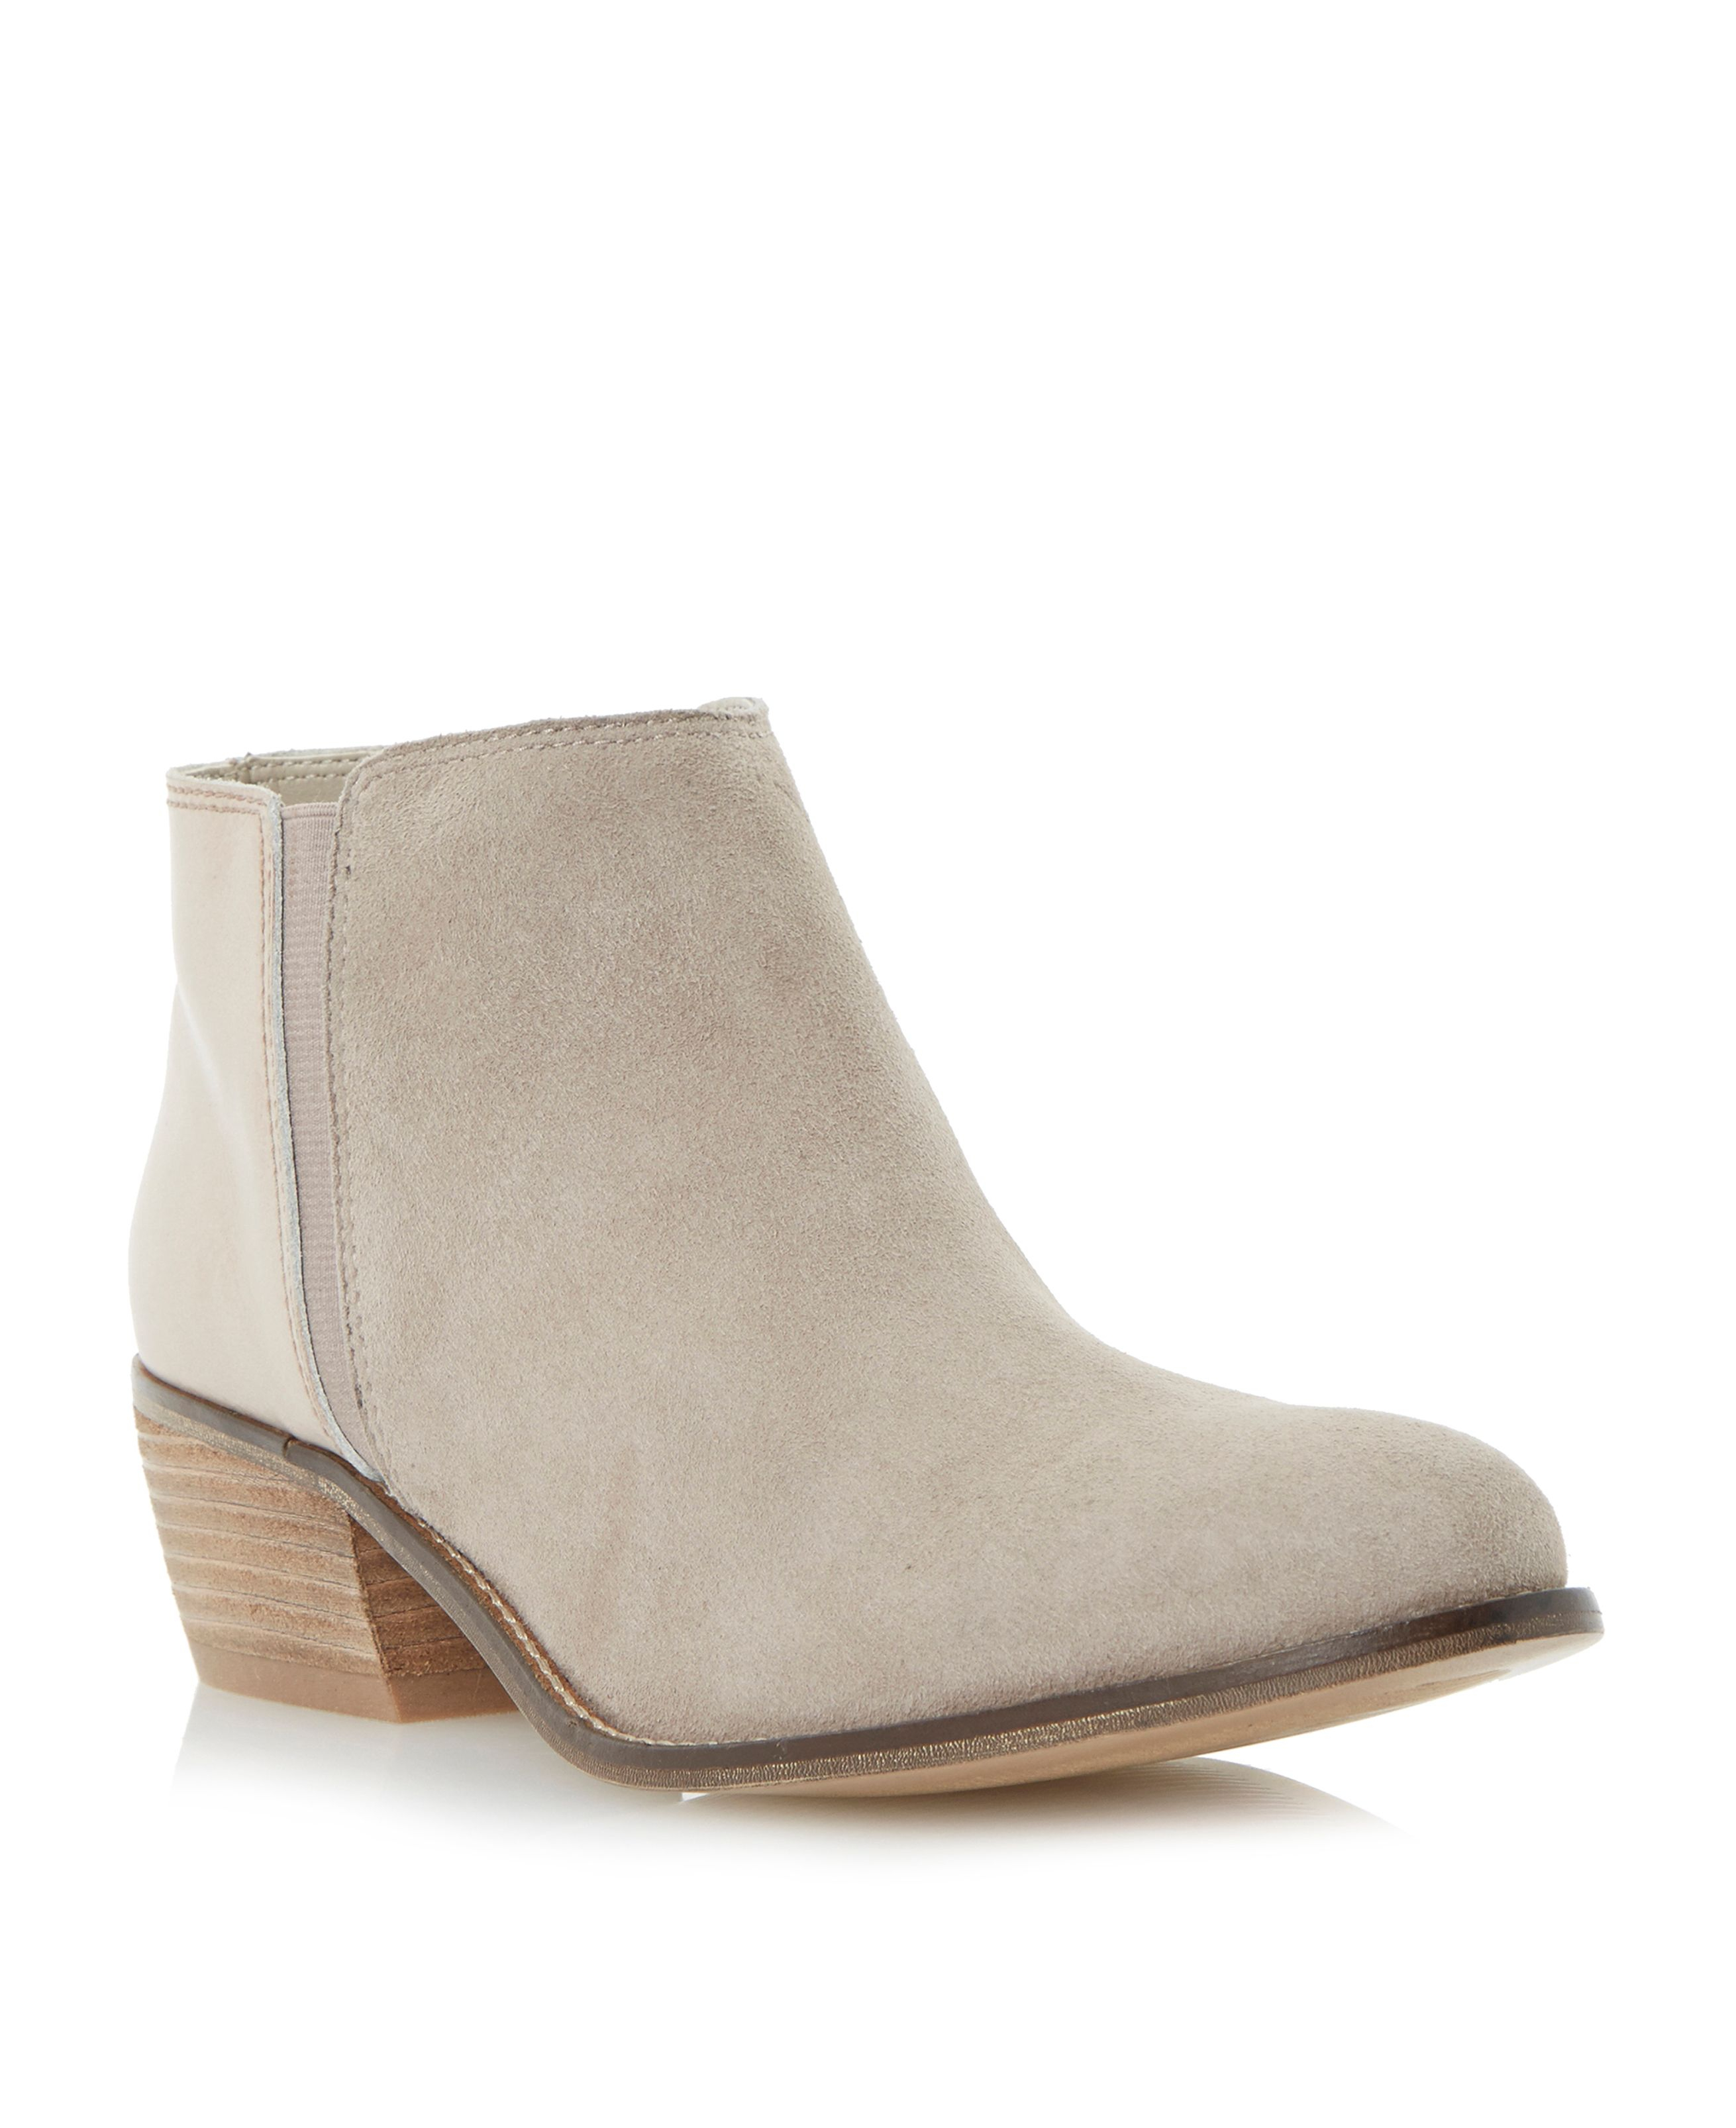 Dune Penelope Leather Low Ankle Boots in Natural | Lyst